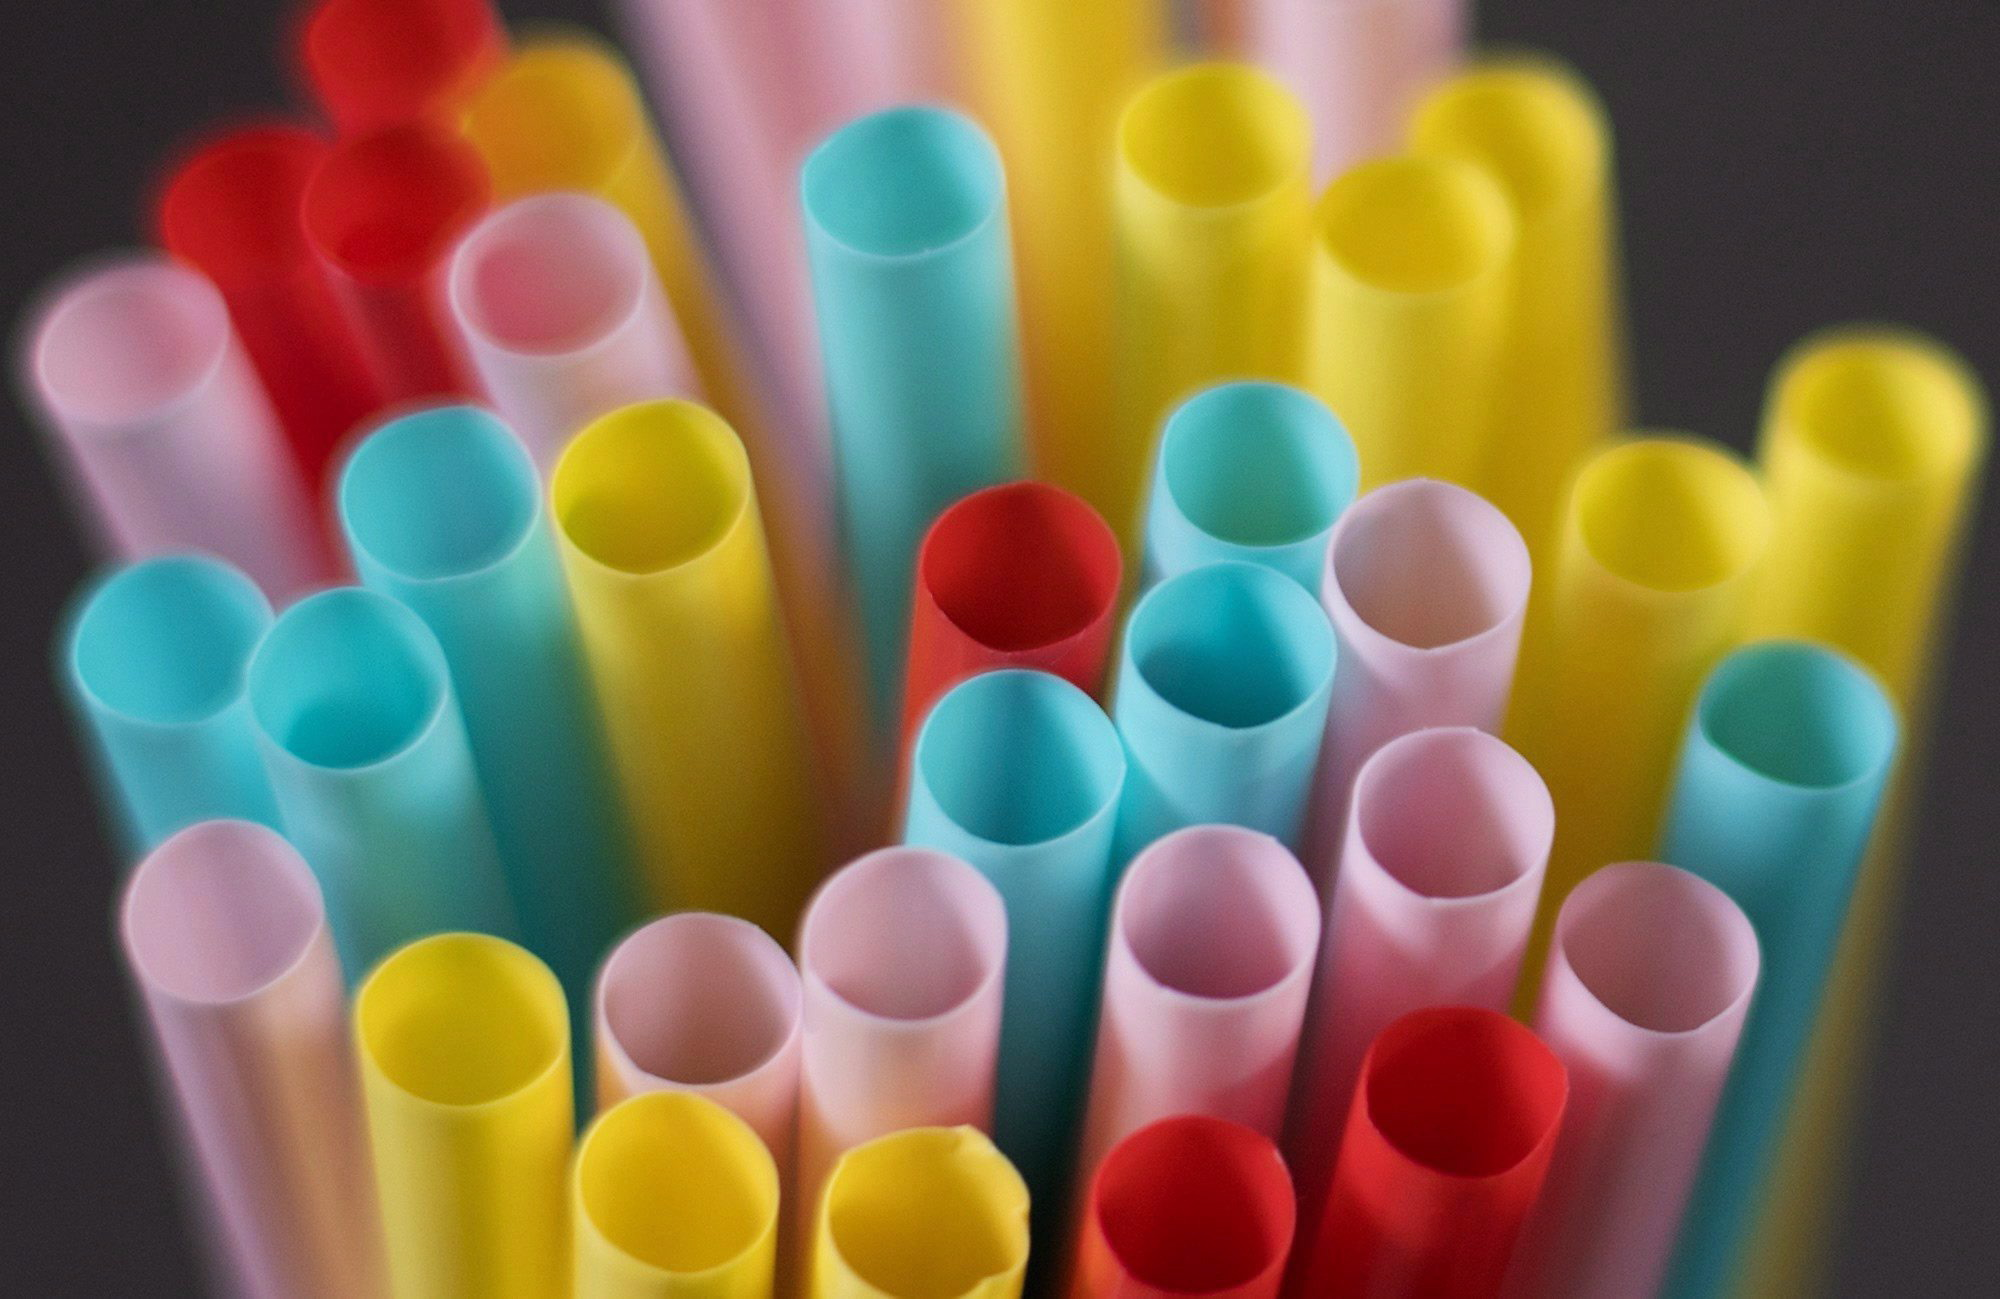 CANADA: Straws, plastic bags to be banned nationwide by end of 2021""